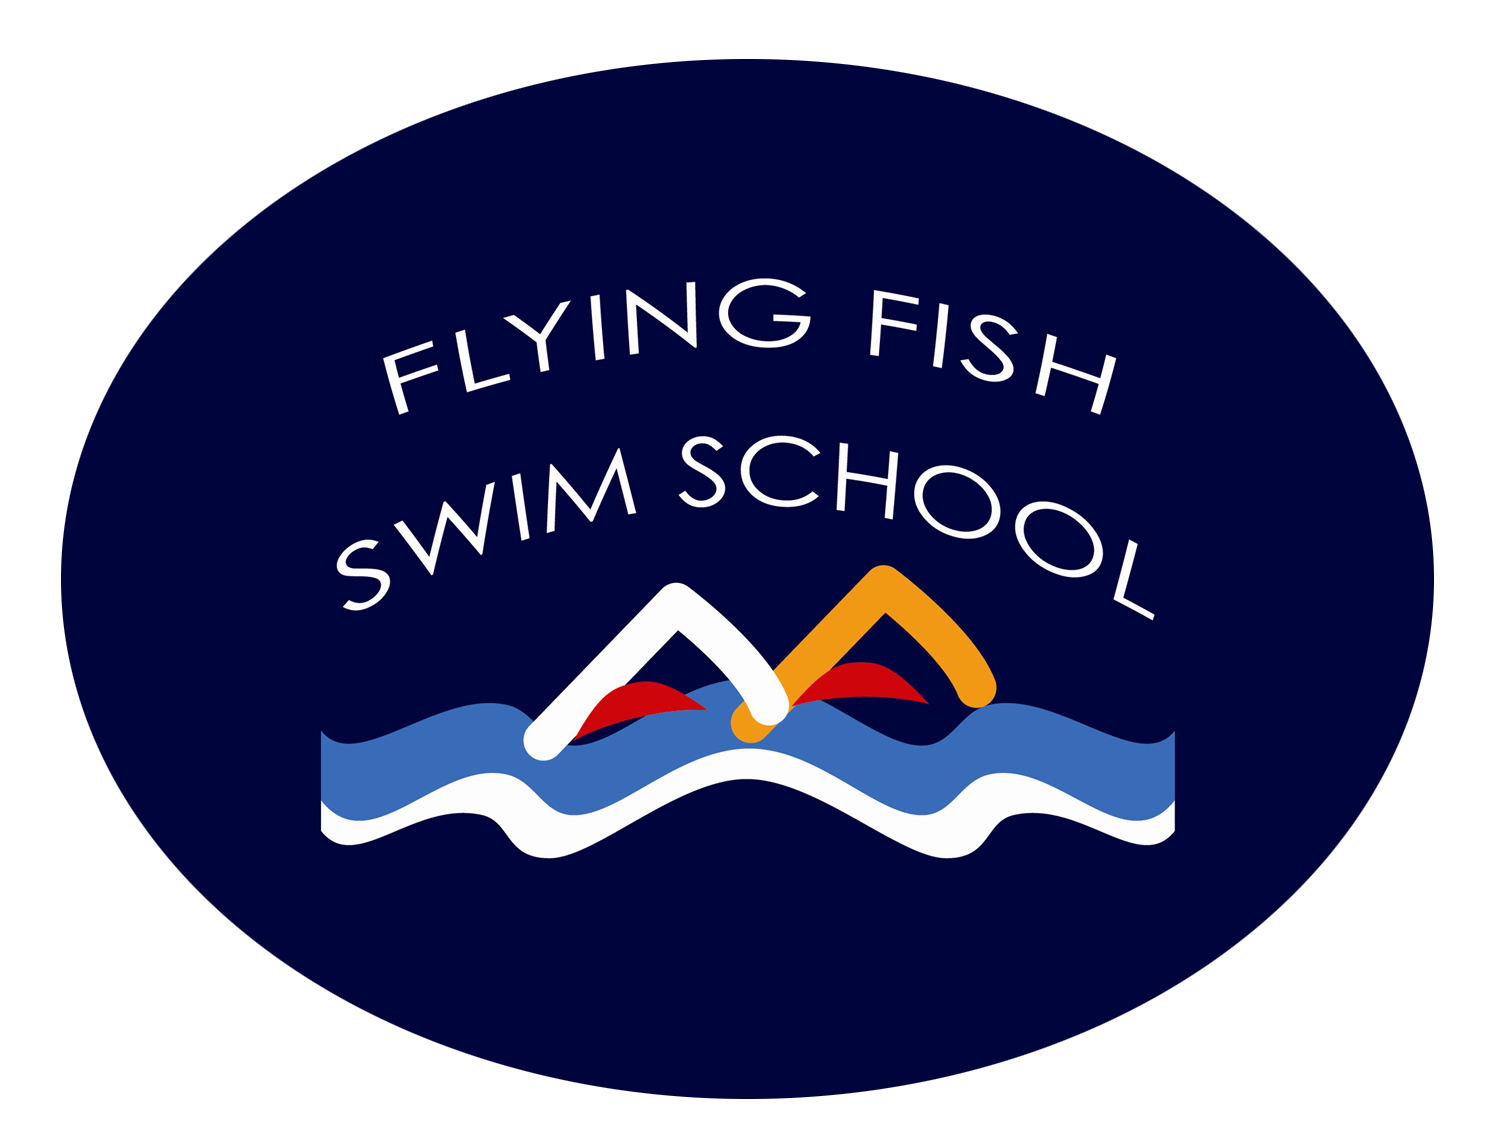 FlyingFishSchool